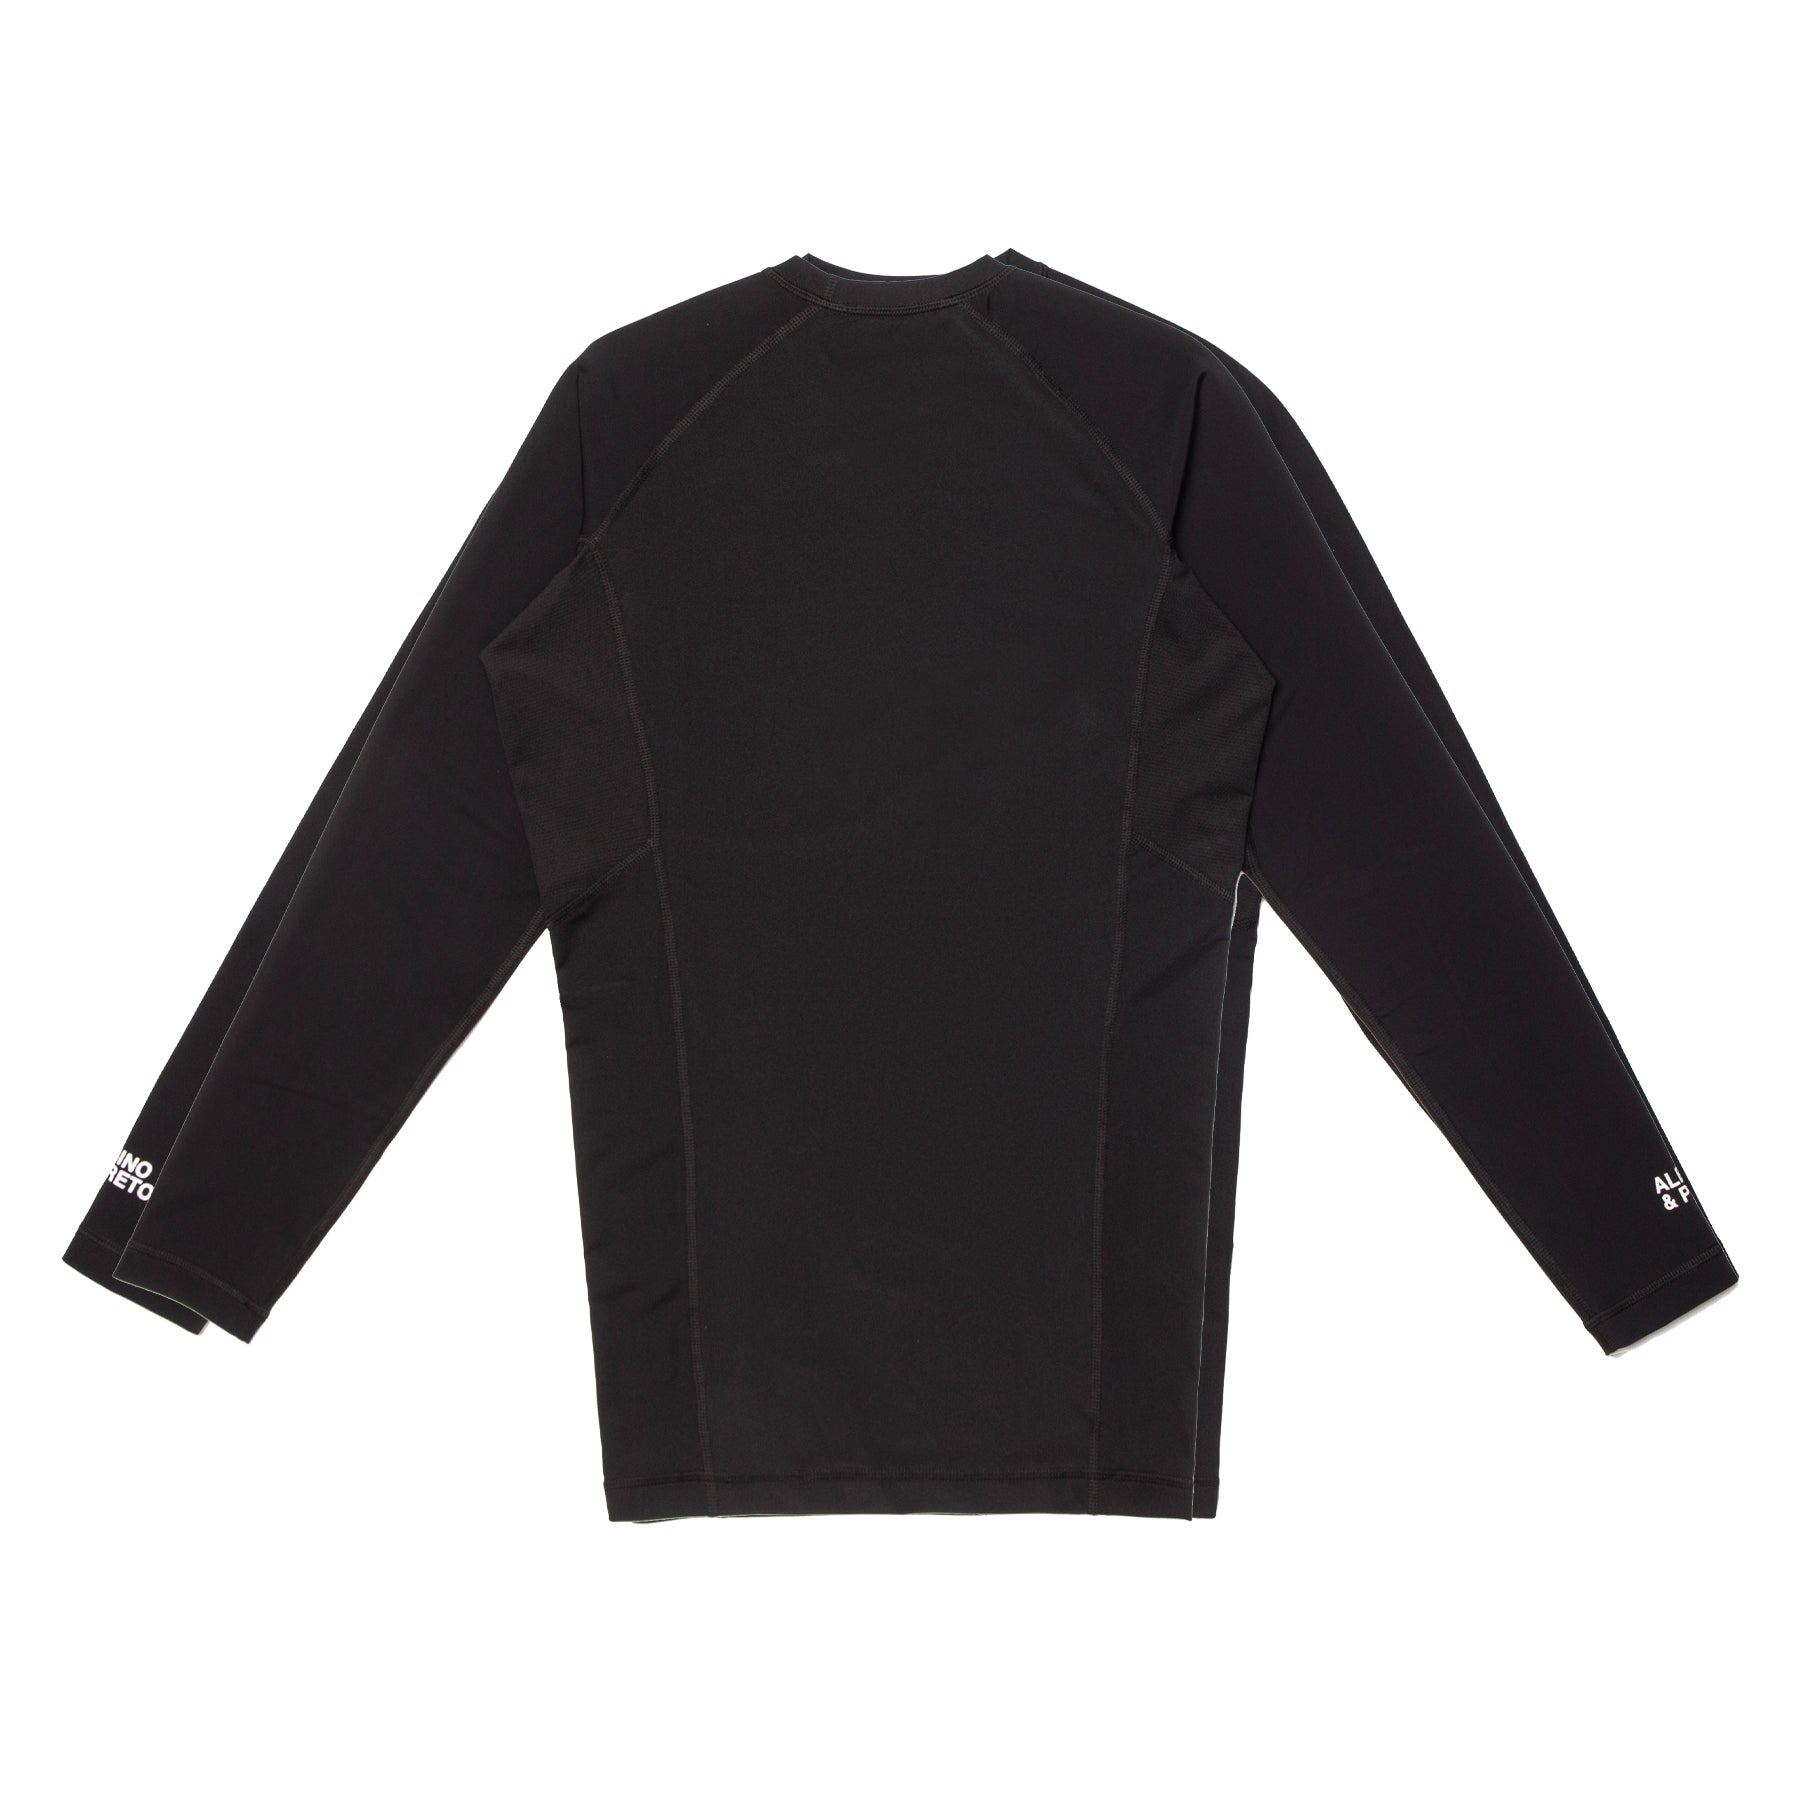 A&P EVAP LS RASH GUARD (BLACK)